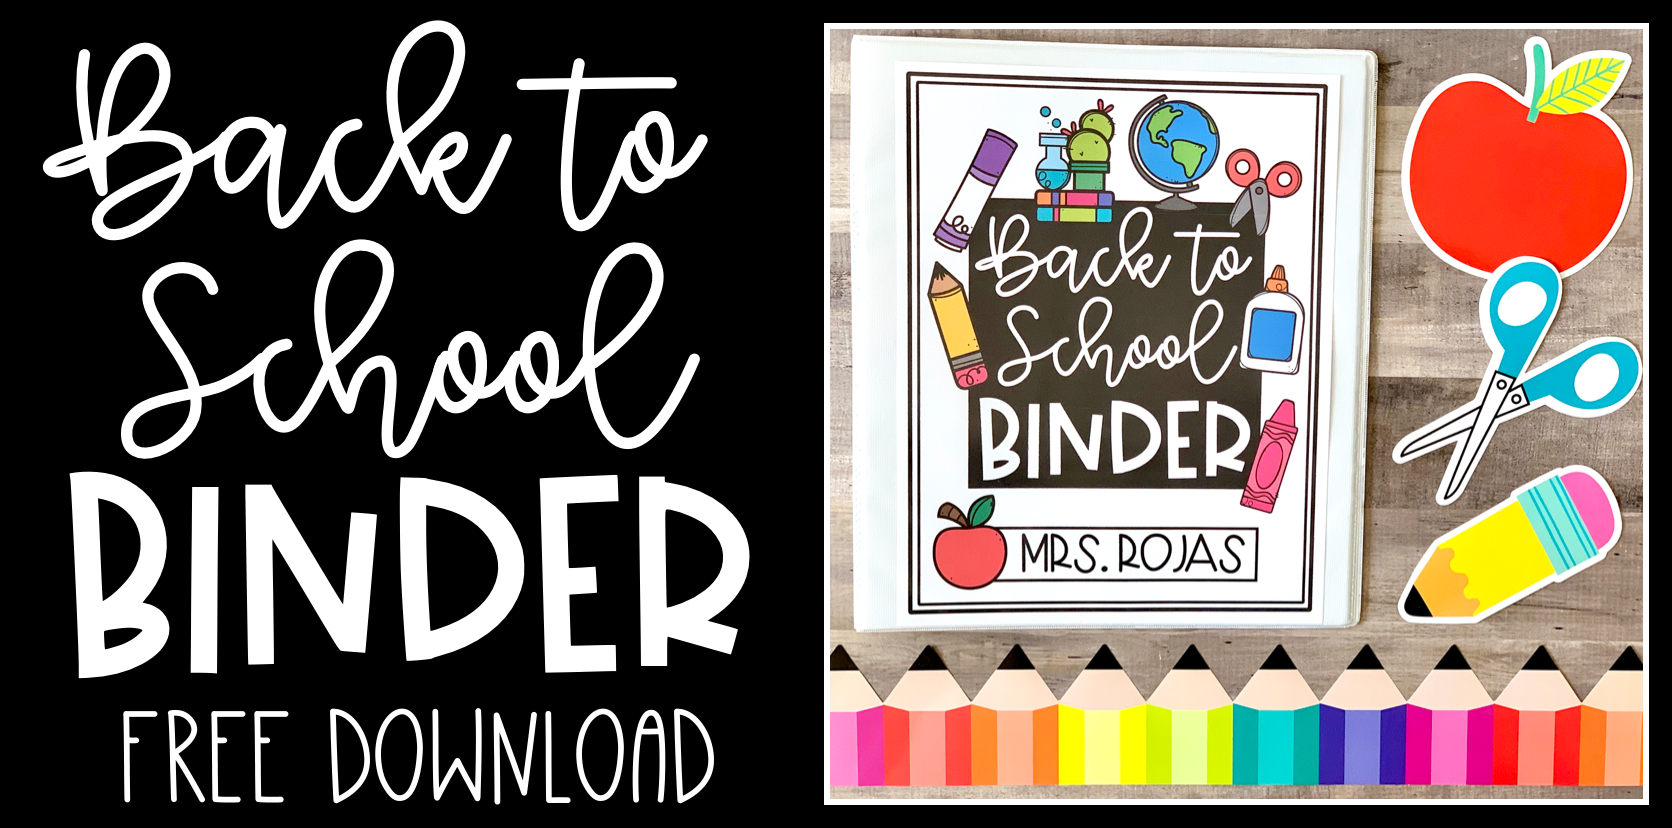 Creating a Back to School Binder